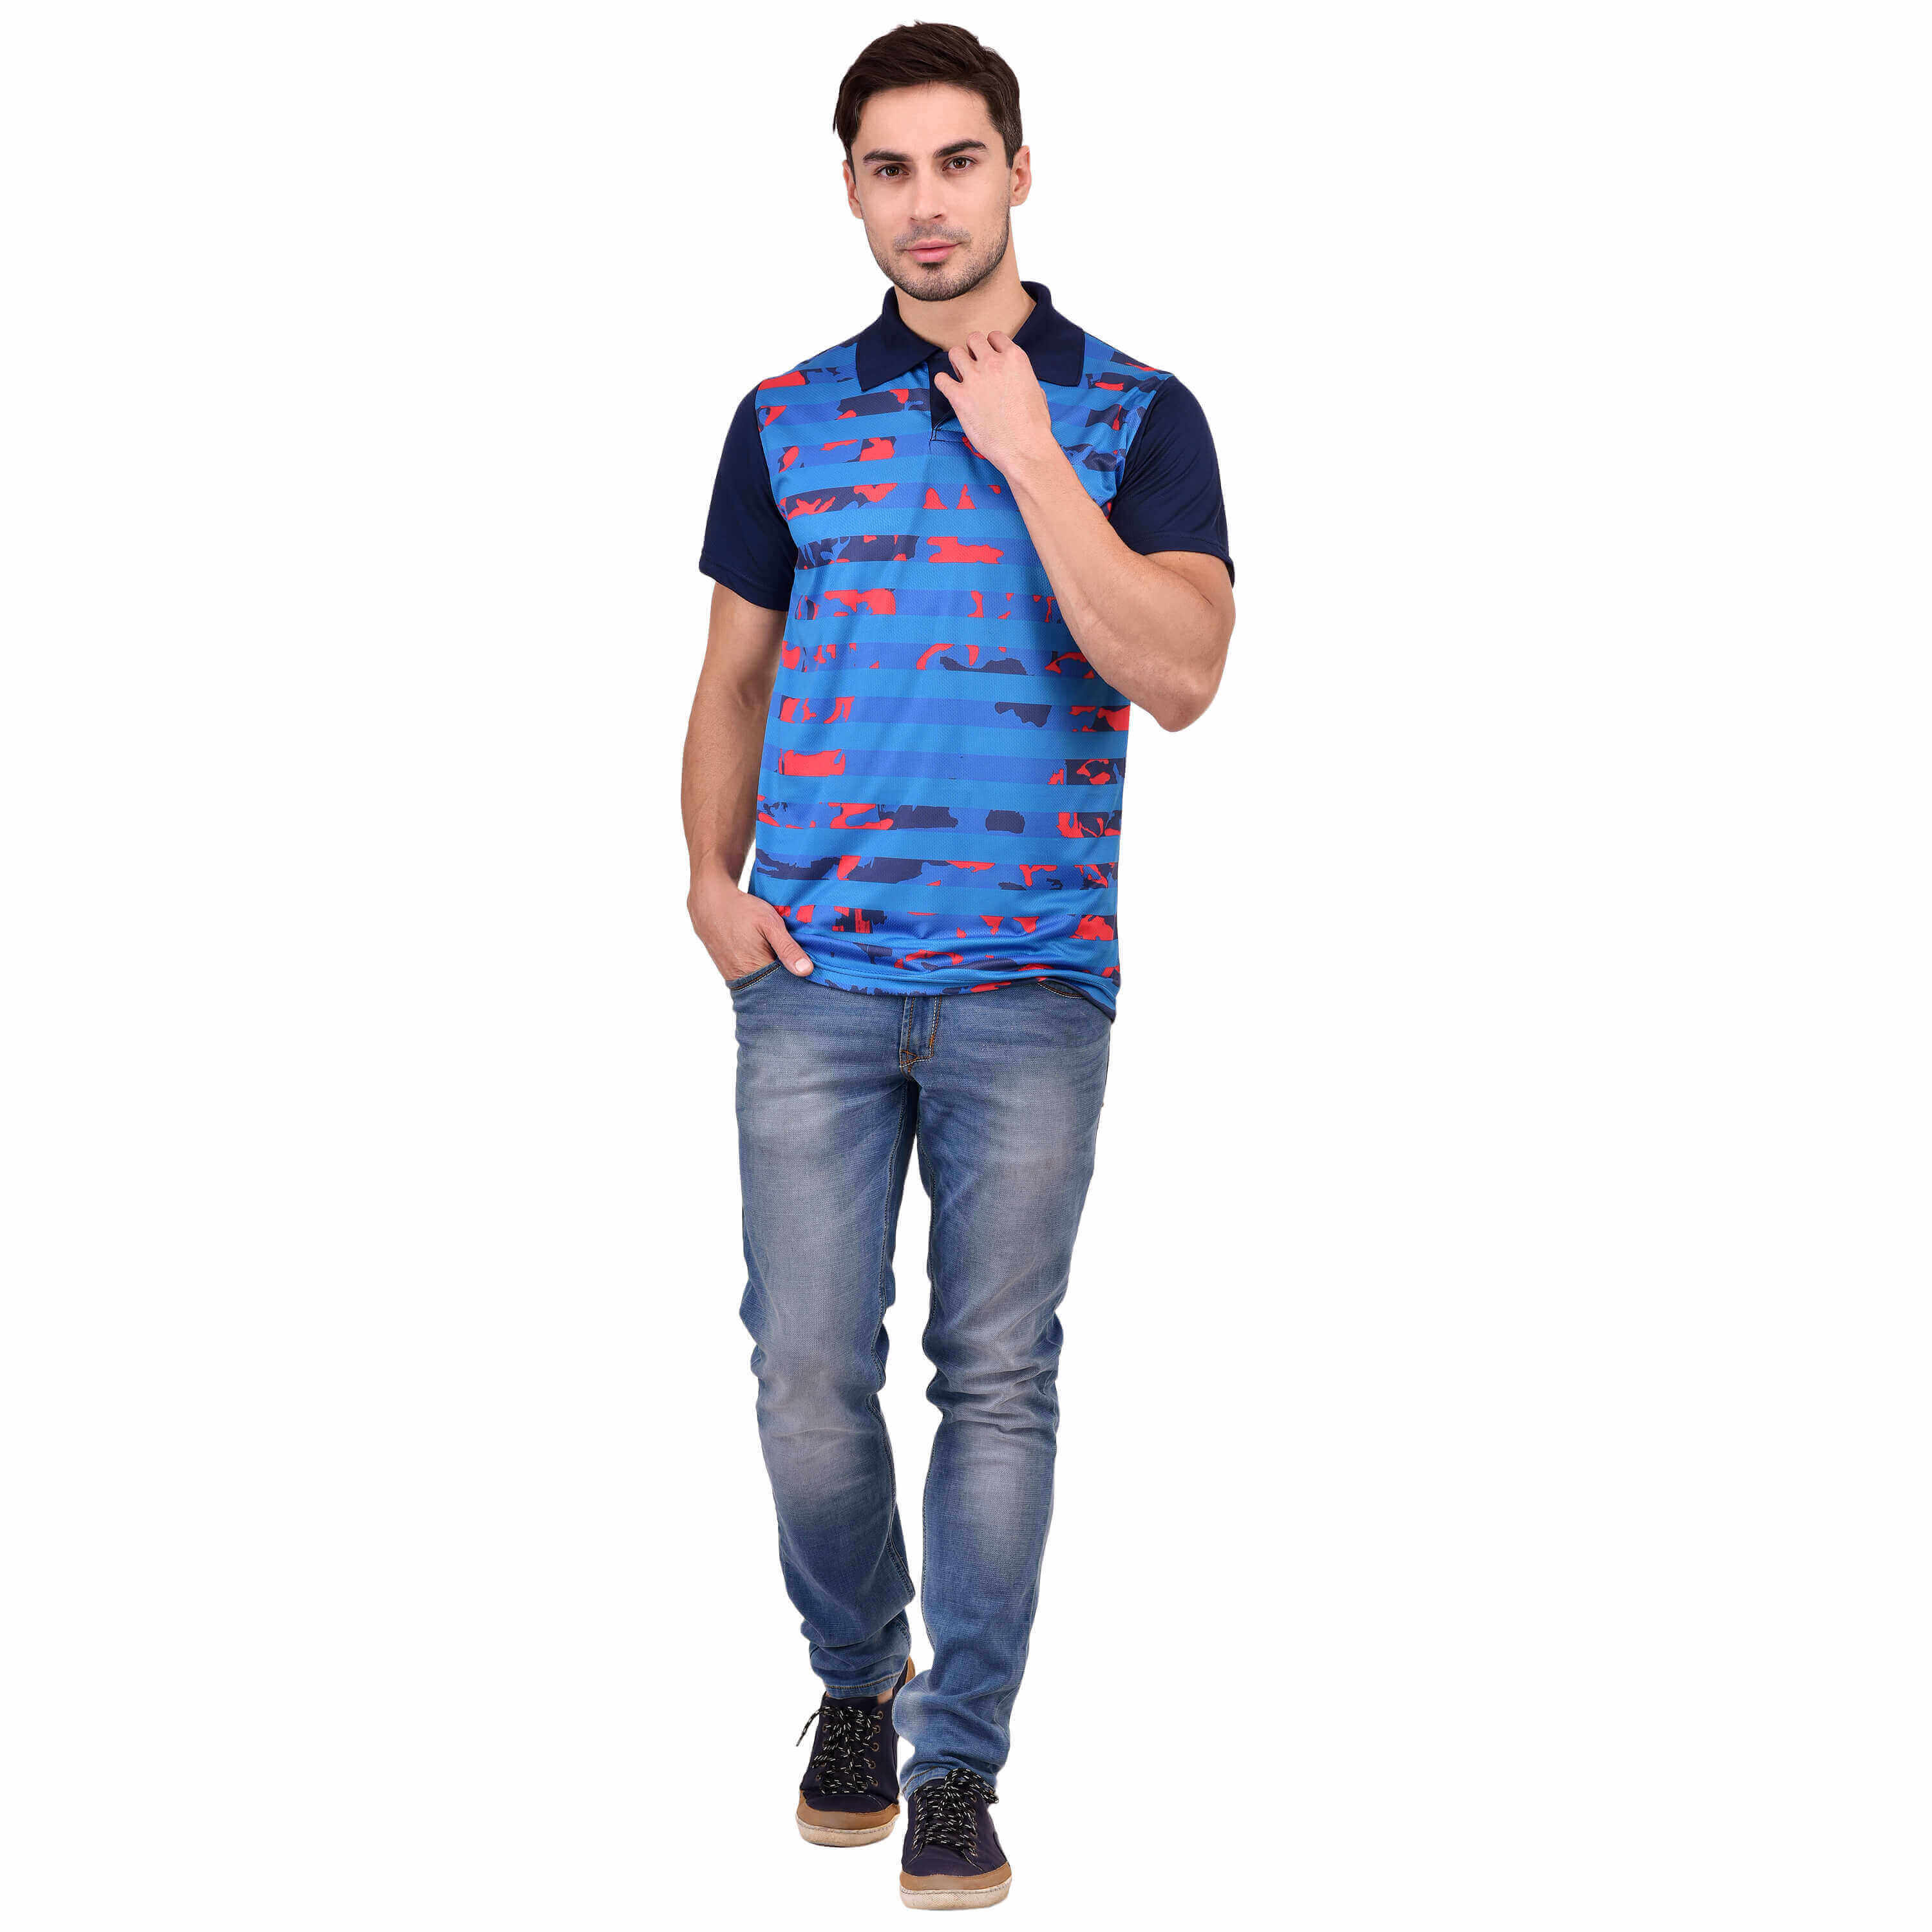 Cool T Shirts Manufacturers in Srinagar